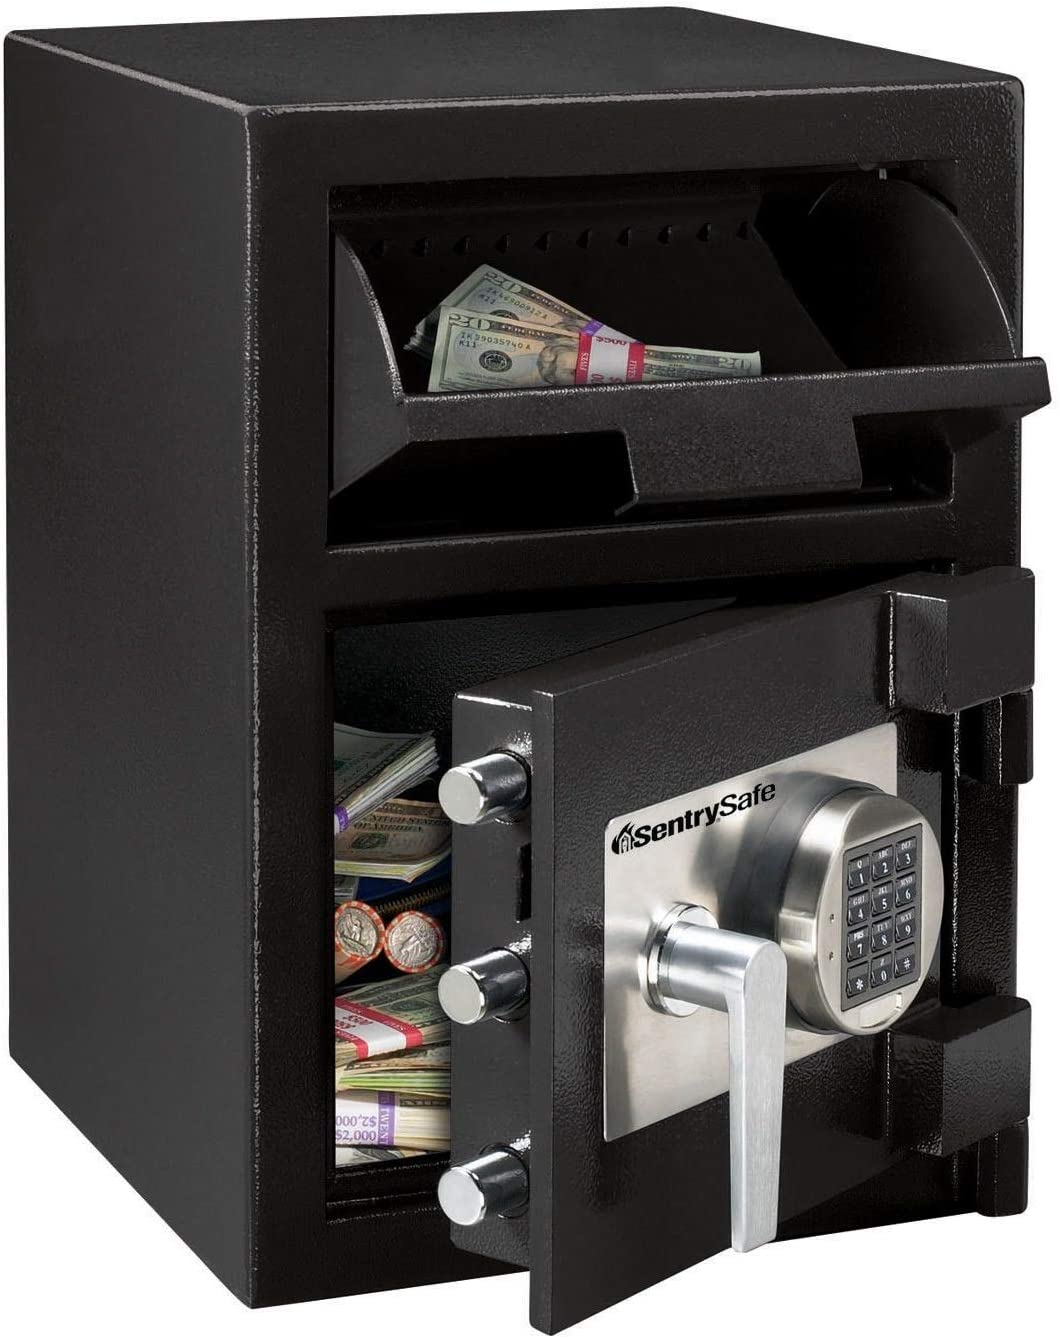 Sentry Max 42% OFF Safe DH-074E Front Depository Loading SentrySafe by Spring new work one after another